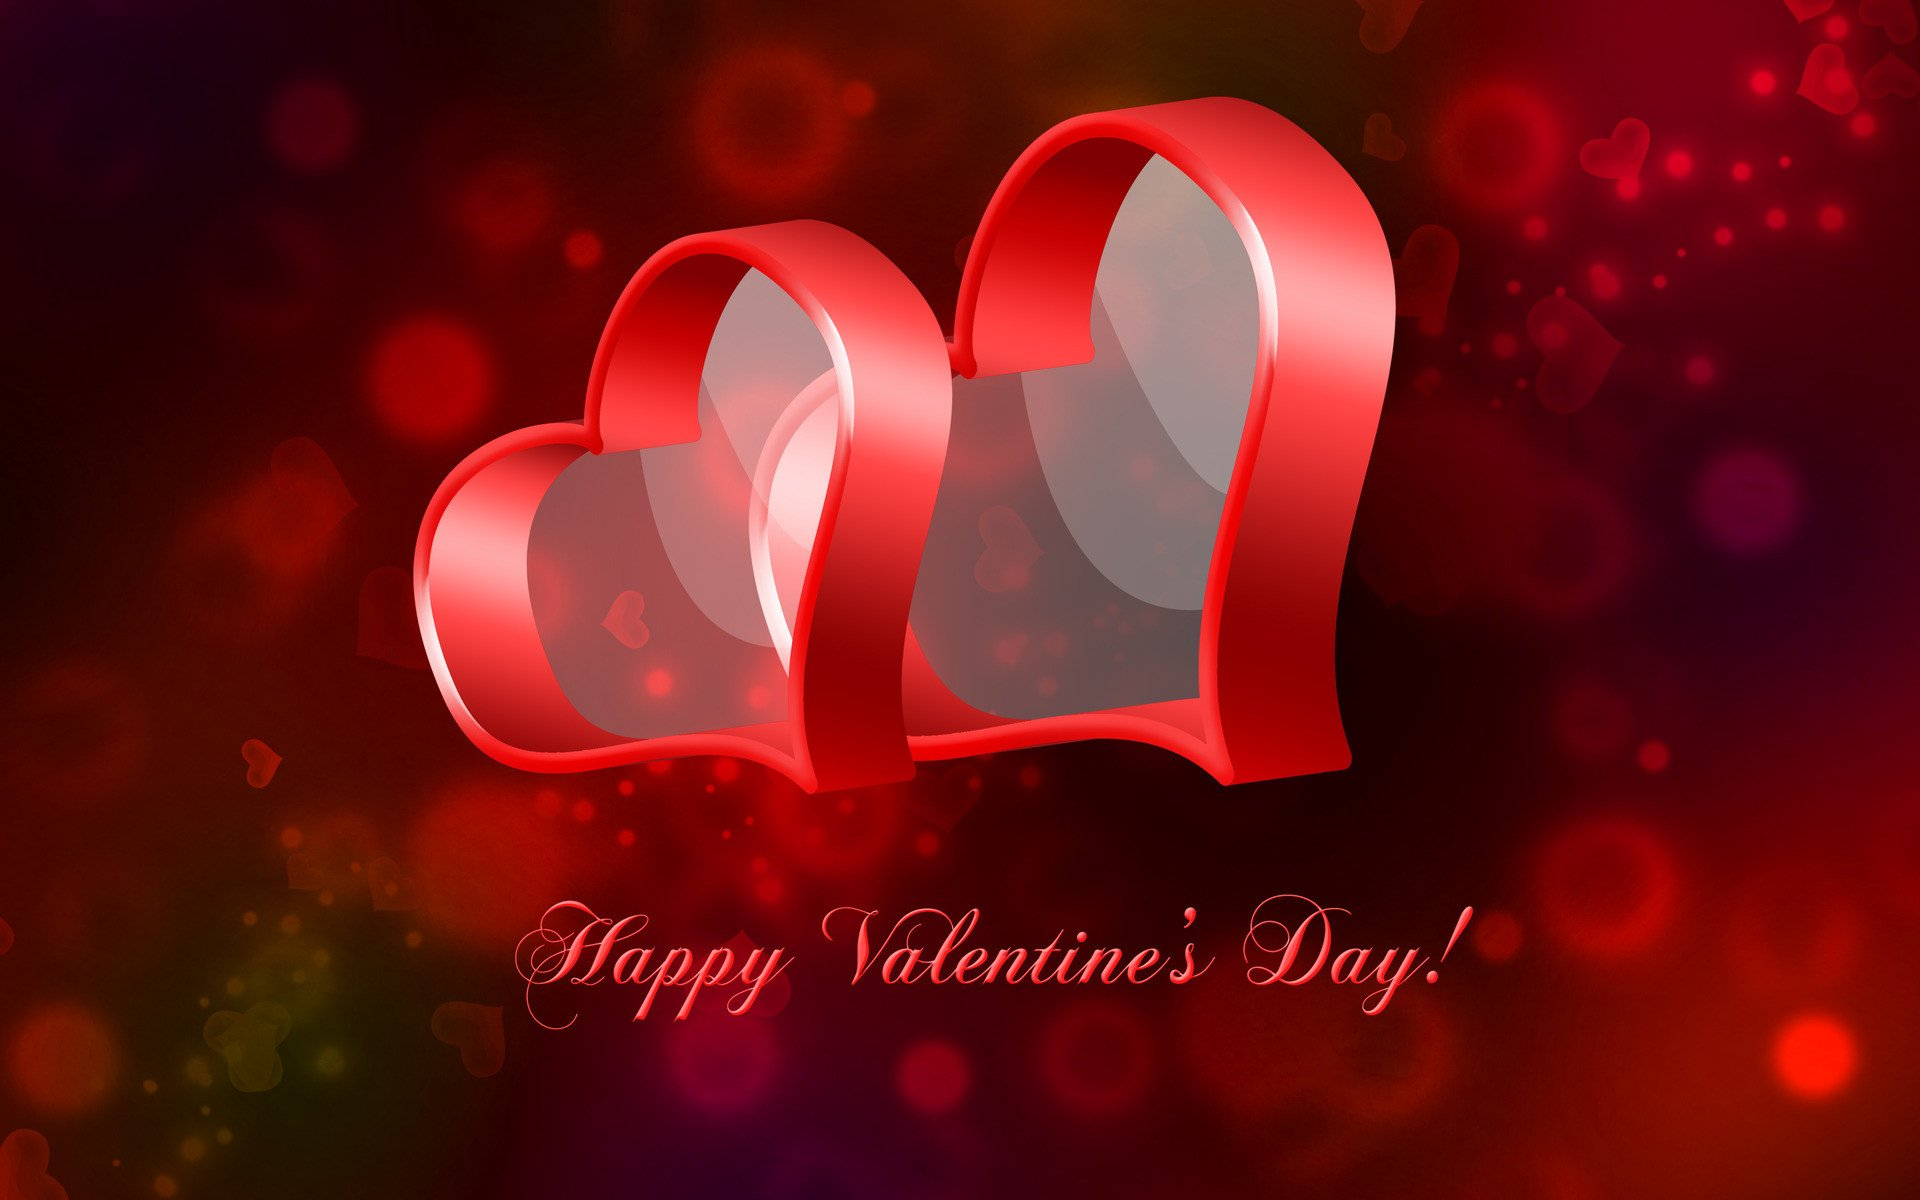 Valentine Day Wallpaper Free Hd Wallpapers Valentines Download